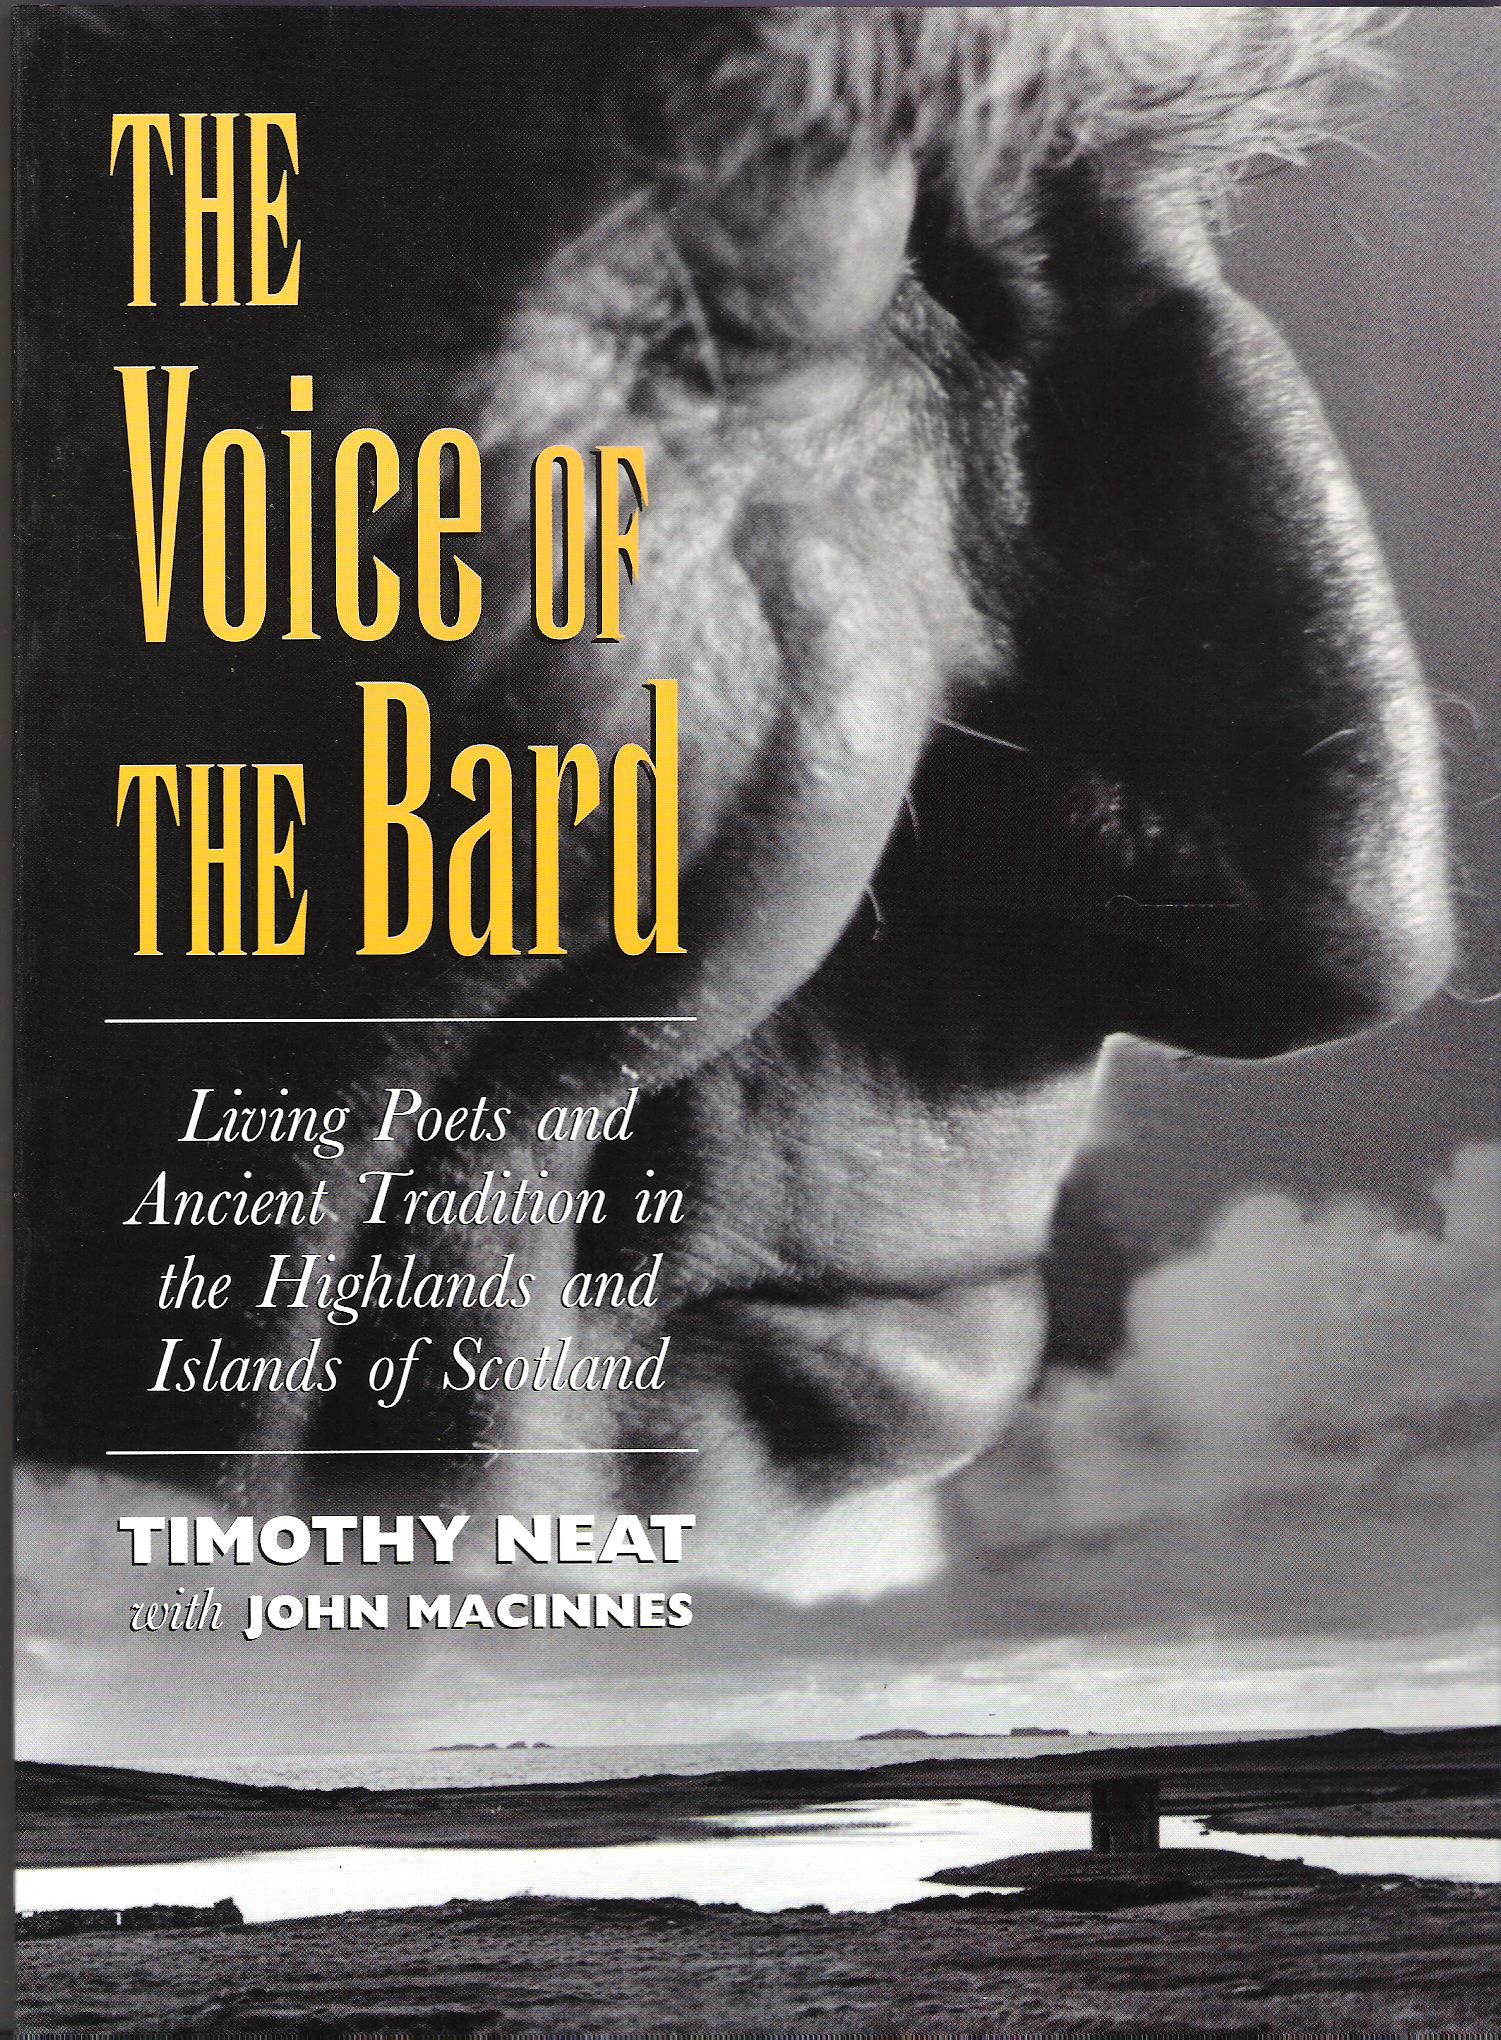 Image for The Voice of the Bard: Living Poets and Ancient Tradition in the Highlands and Islands of Scotland.